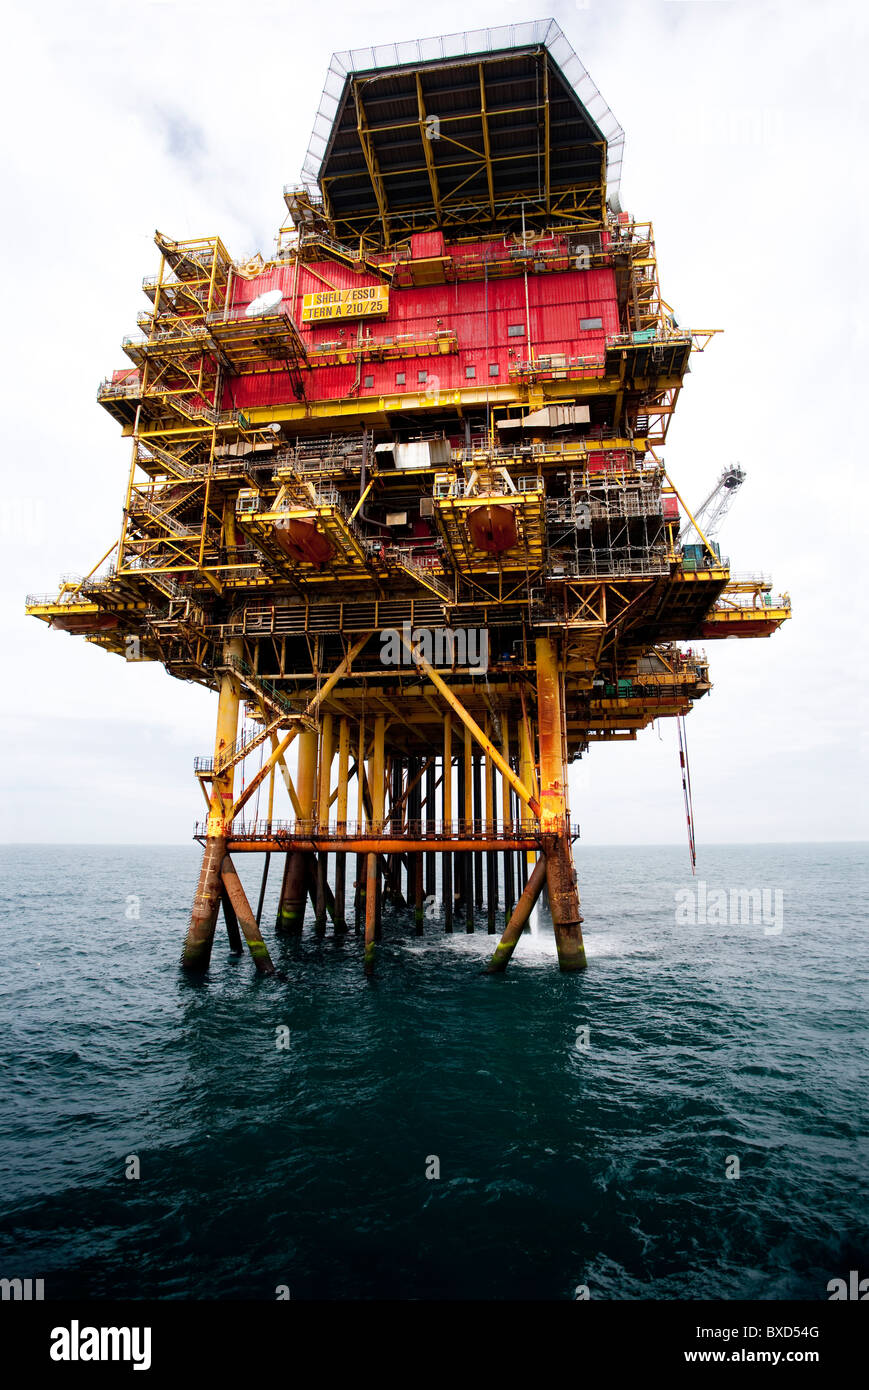 Turn A oil production rig - Stock Image